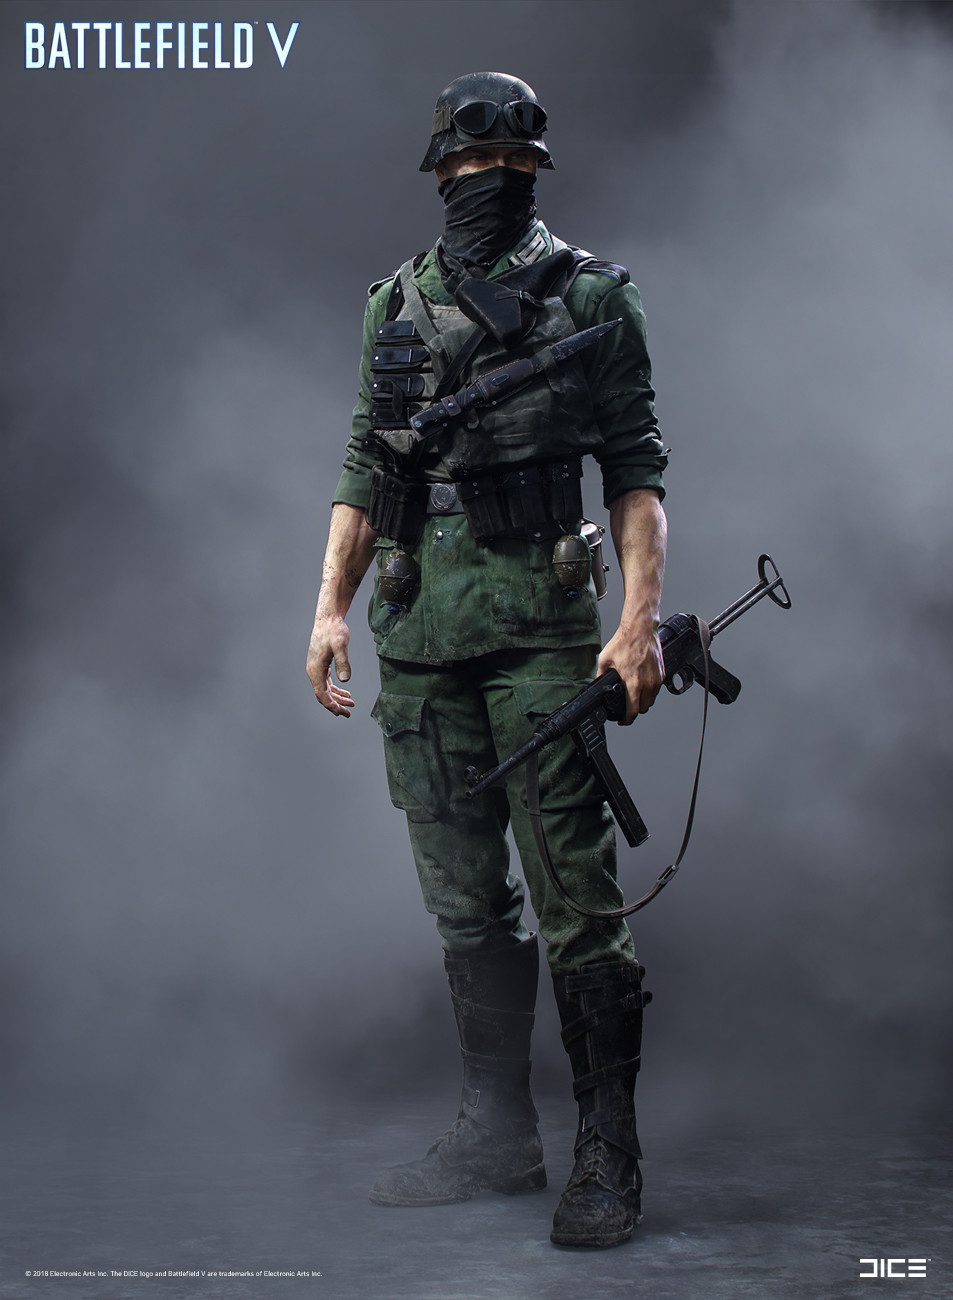 """Battlefield V"" - Axis Assault, MP Soldier - Concept Art"